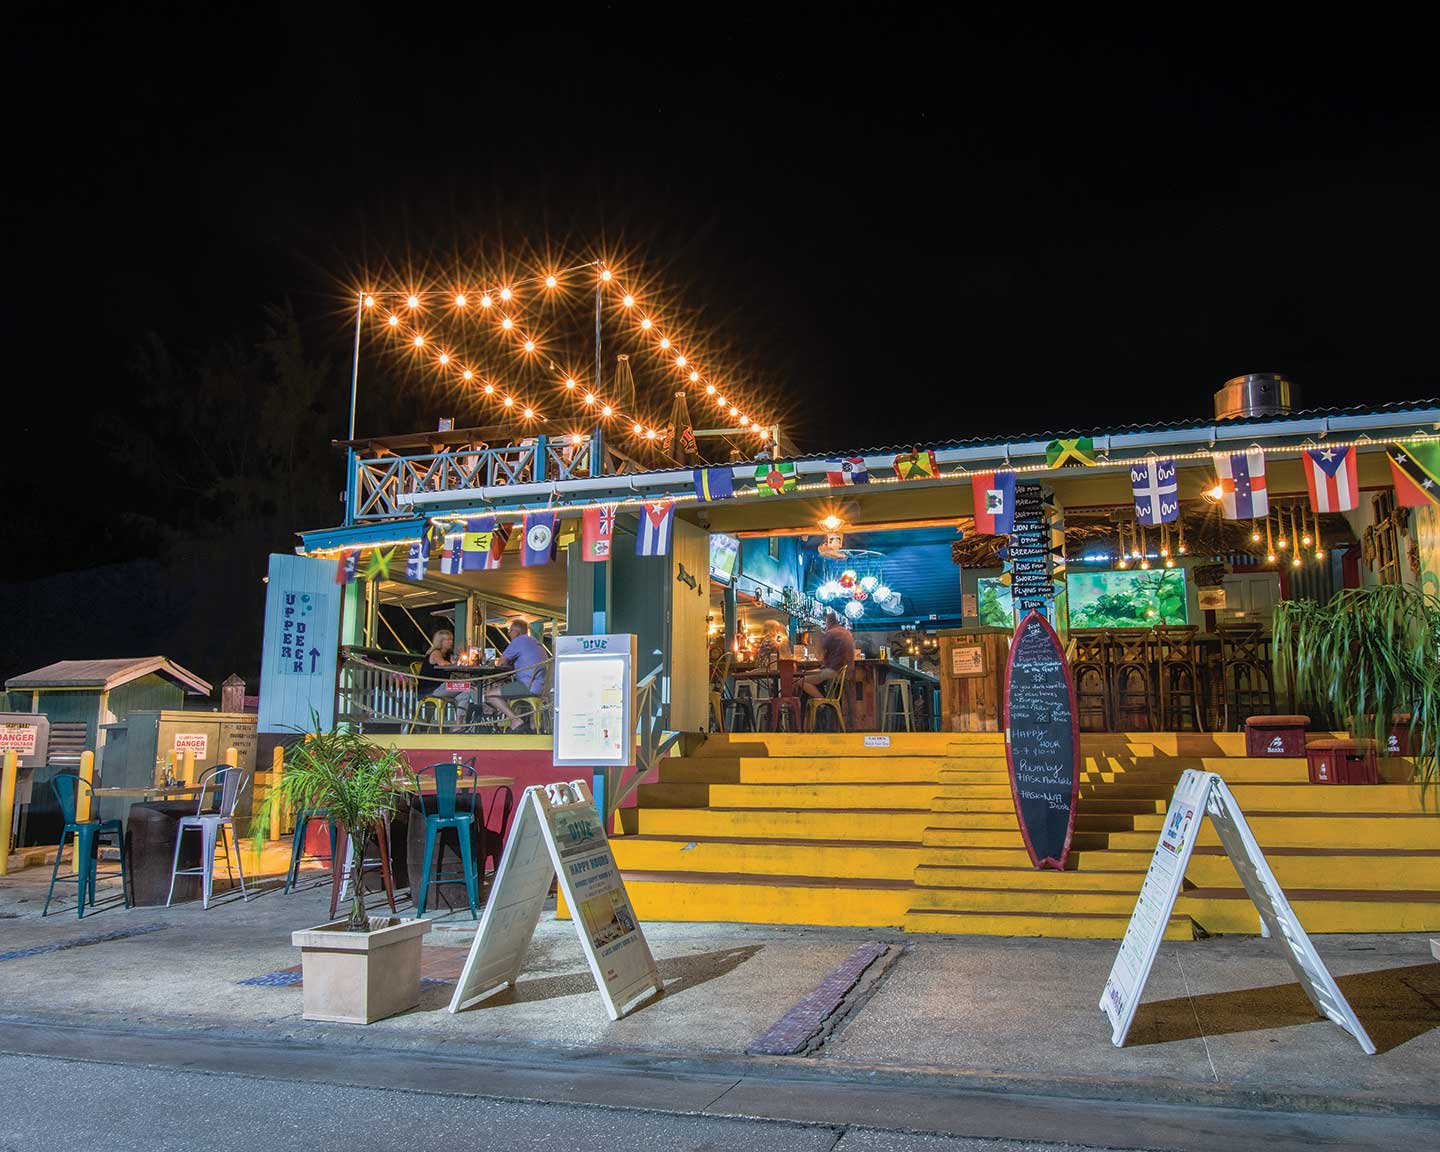 Nightlife and night limes in Barbados